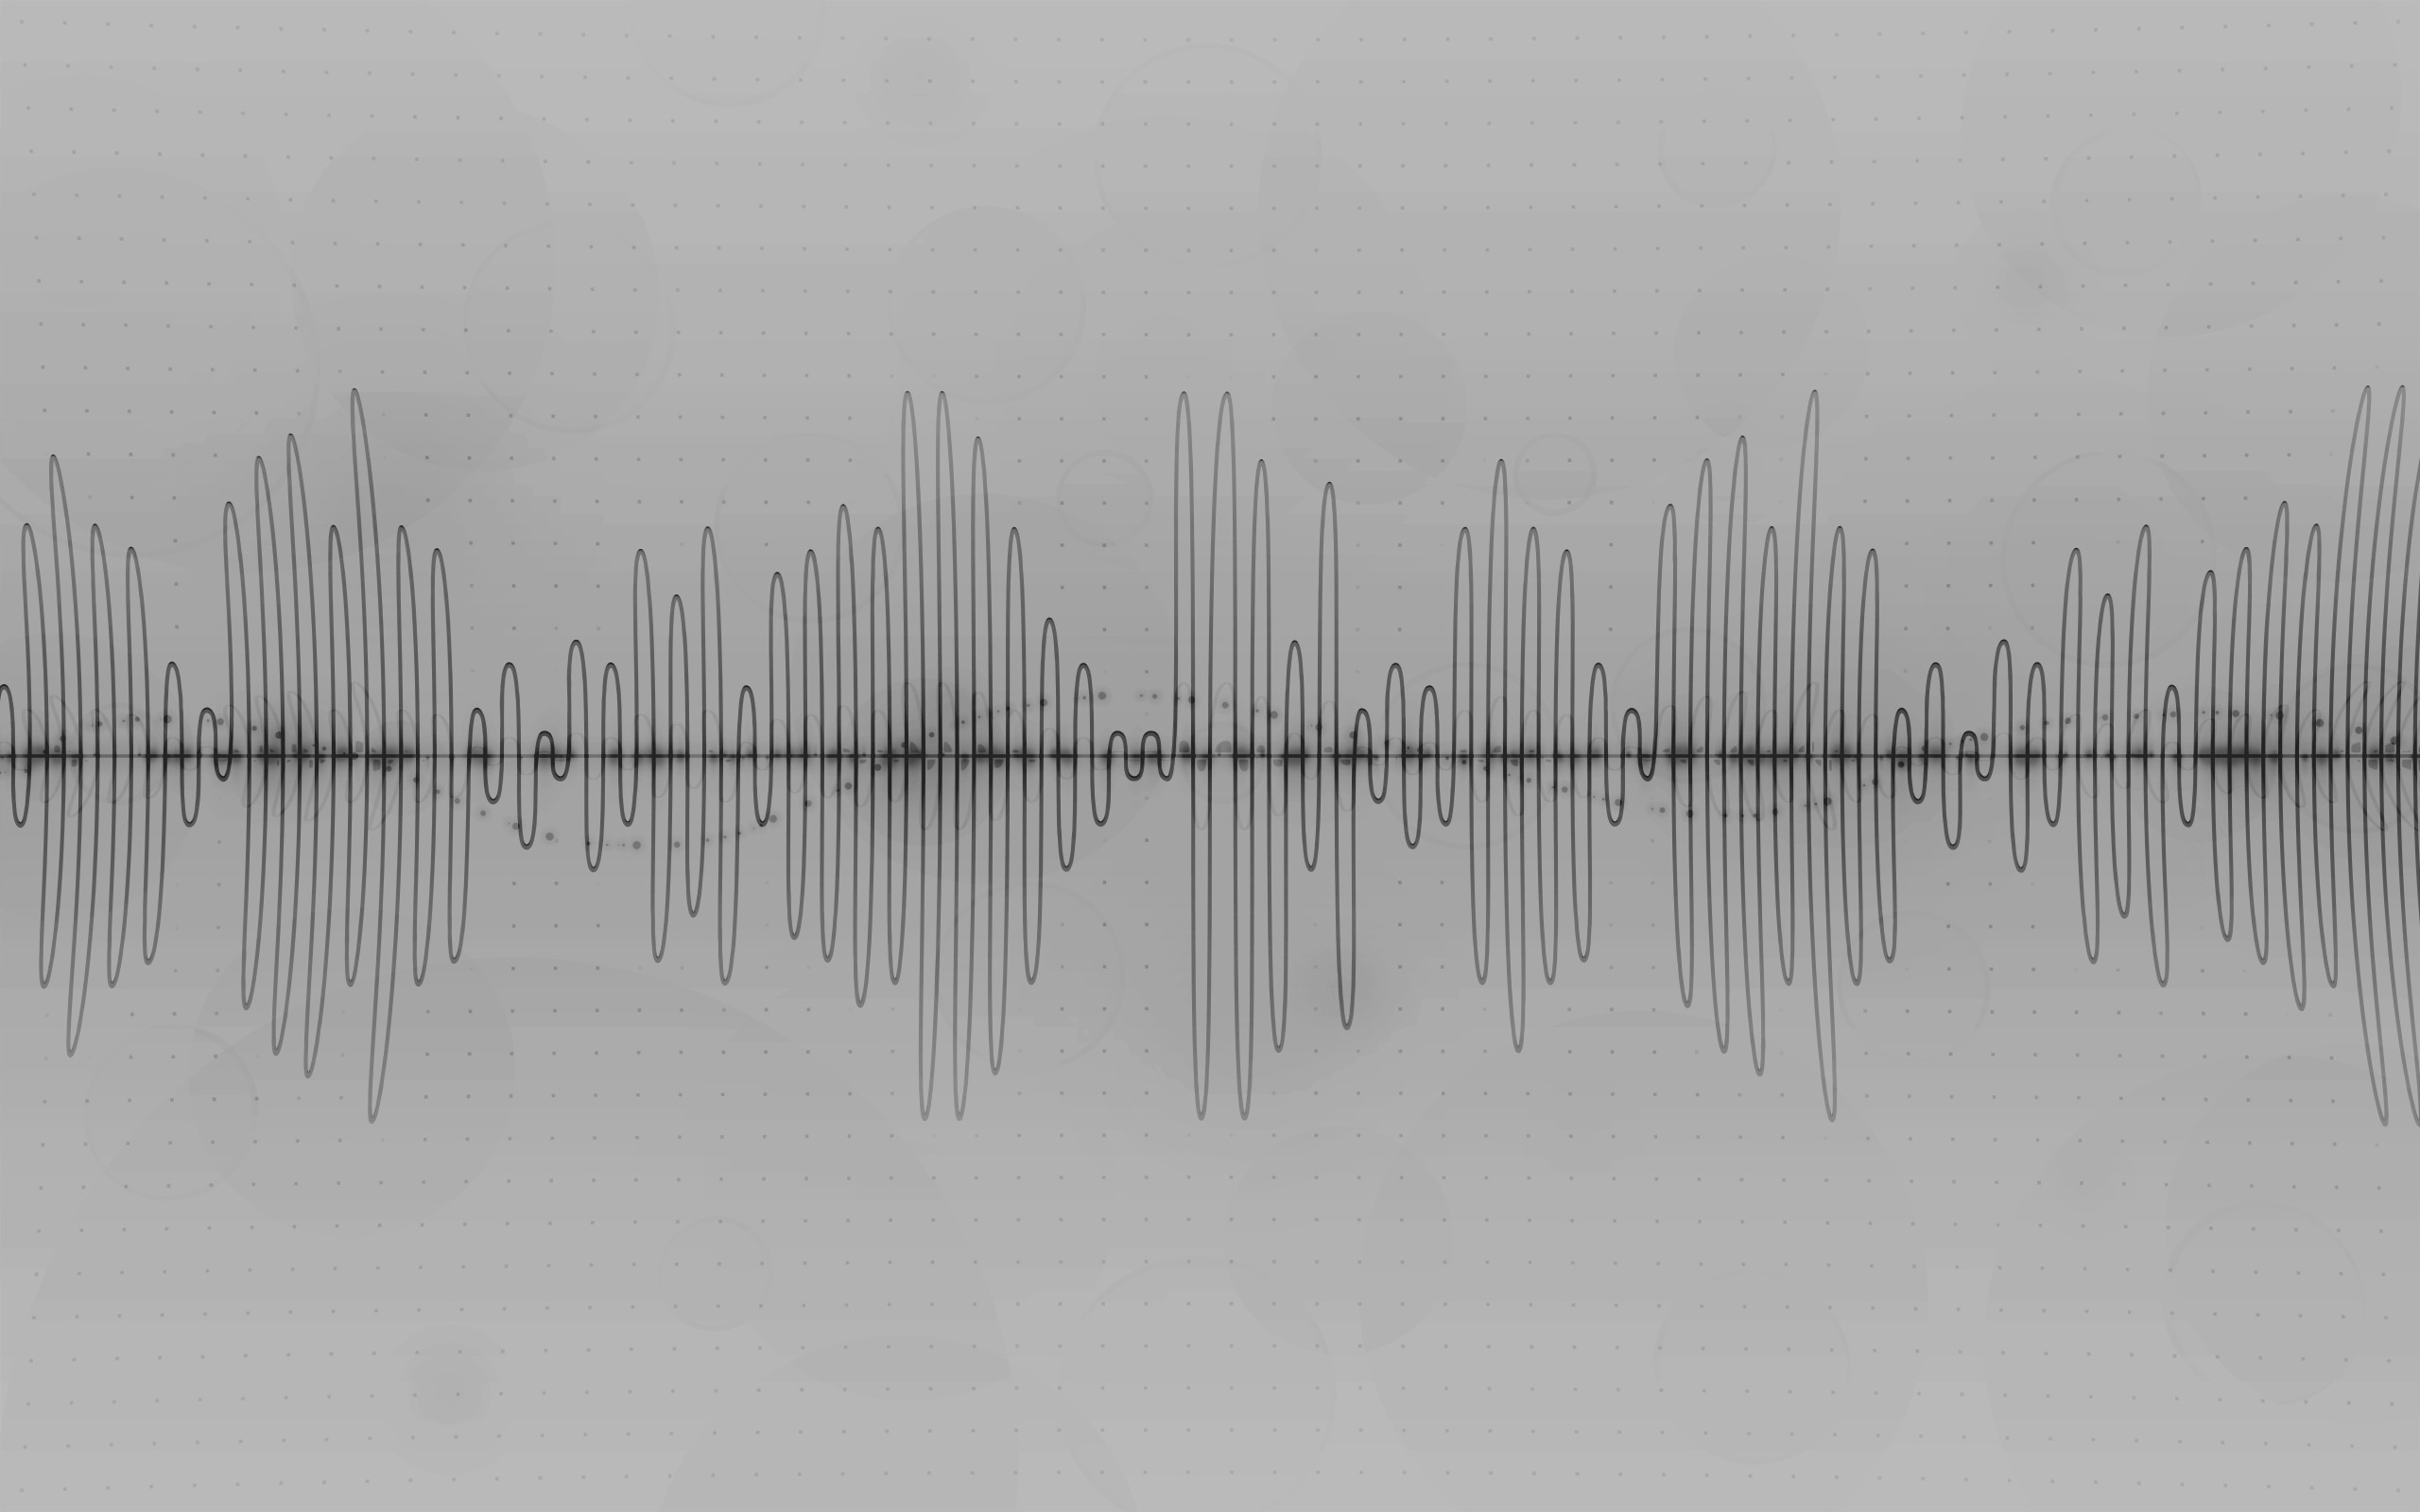 Wallpapers For > Sound Waves Wallpaper White